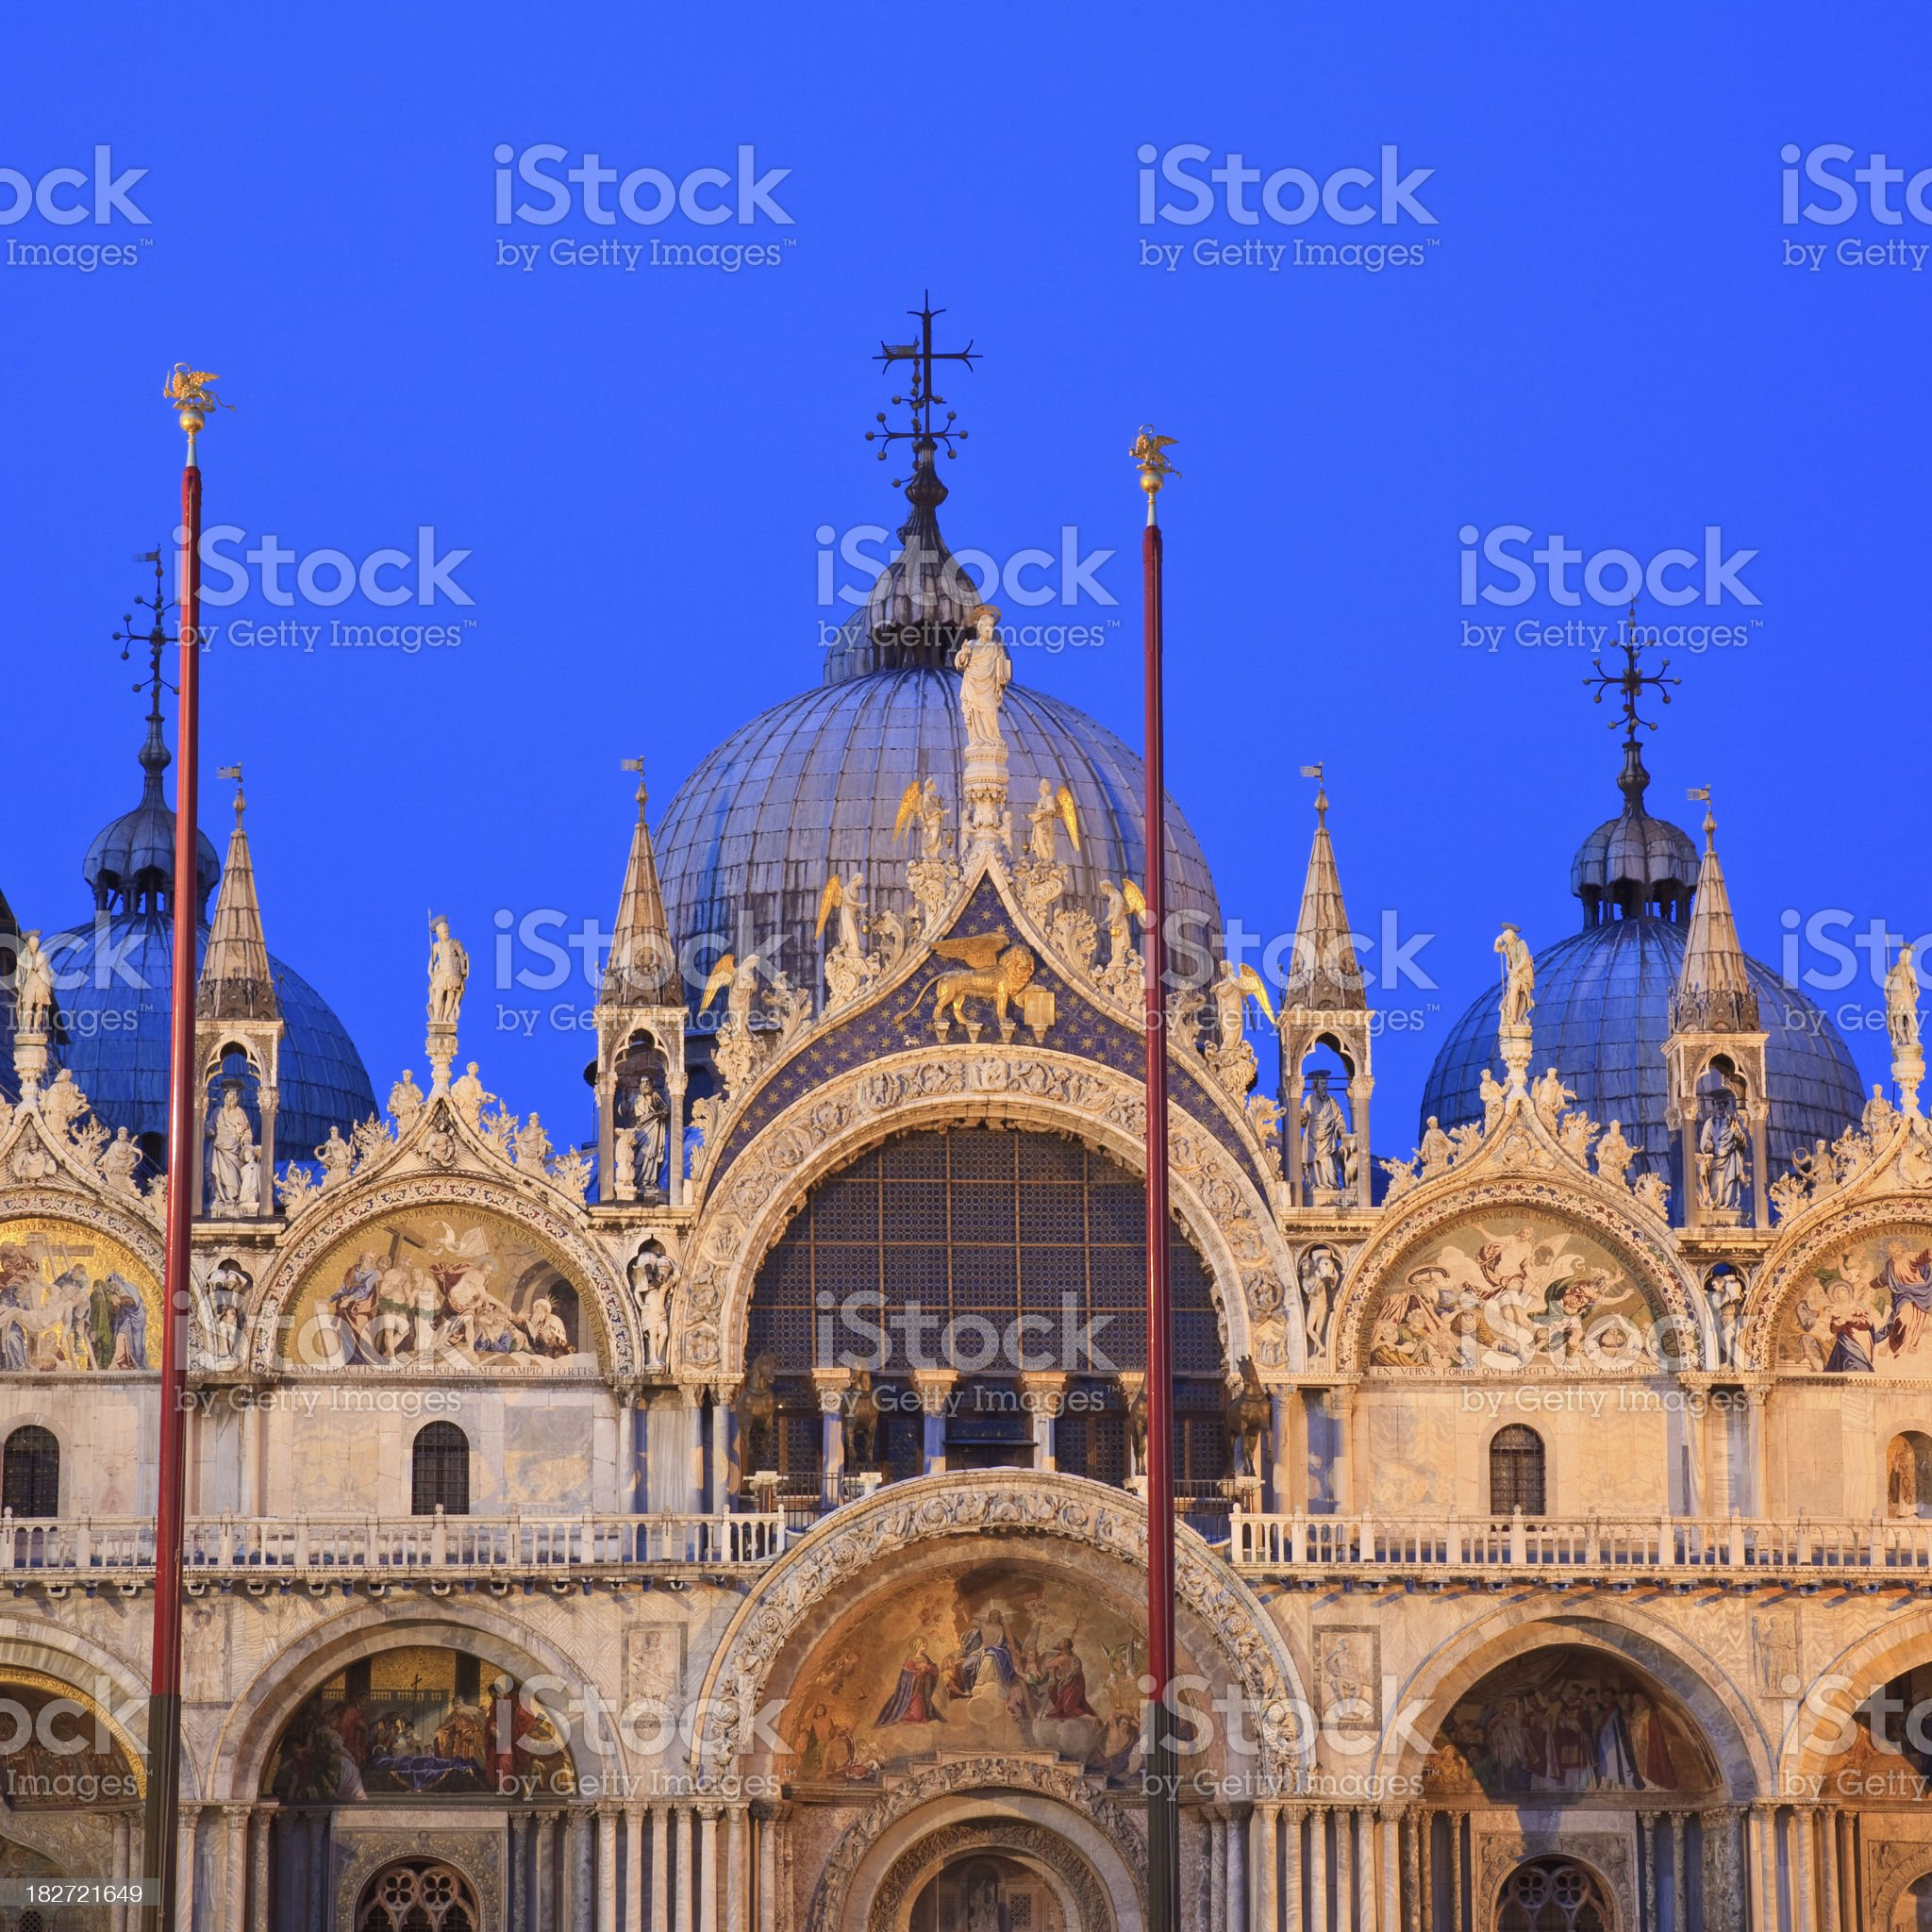 St. Mark's Cathedral, Venice at Dusk royalty-free stock photo